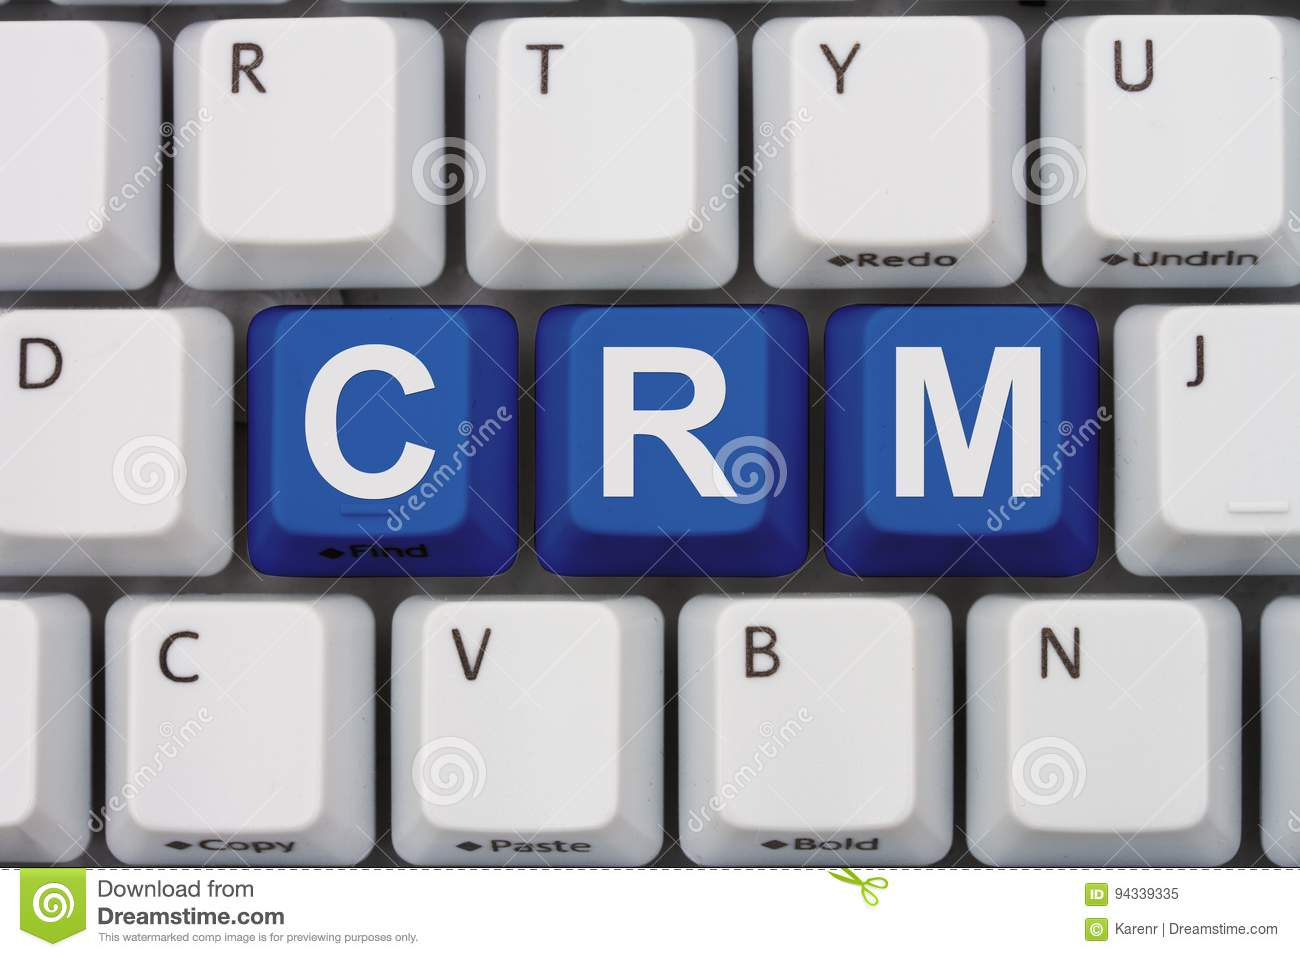 Using CRM software